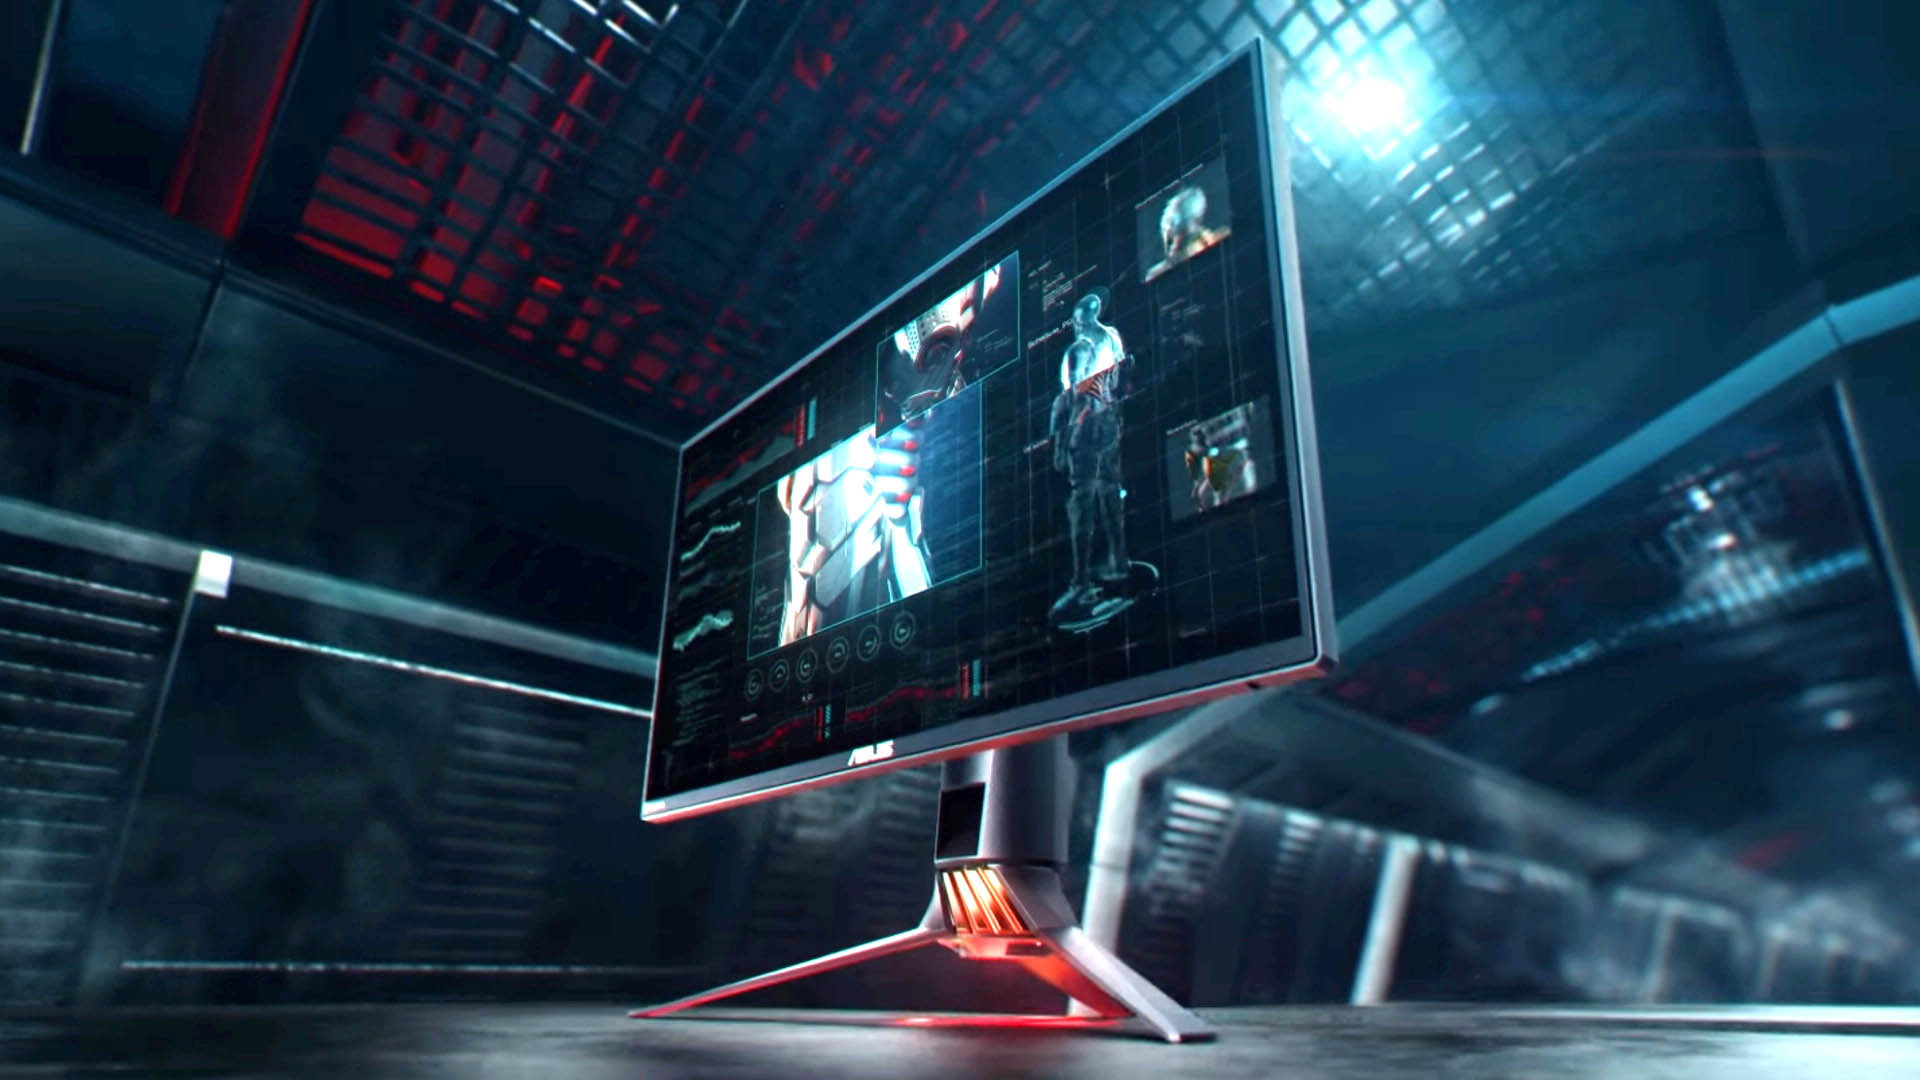 We'll soon get 480Hz gaming monitors with better blacks, but OLED is still absent